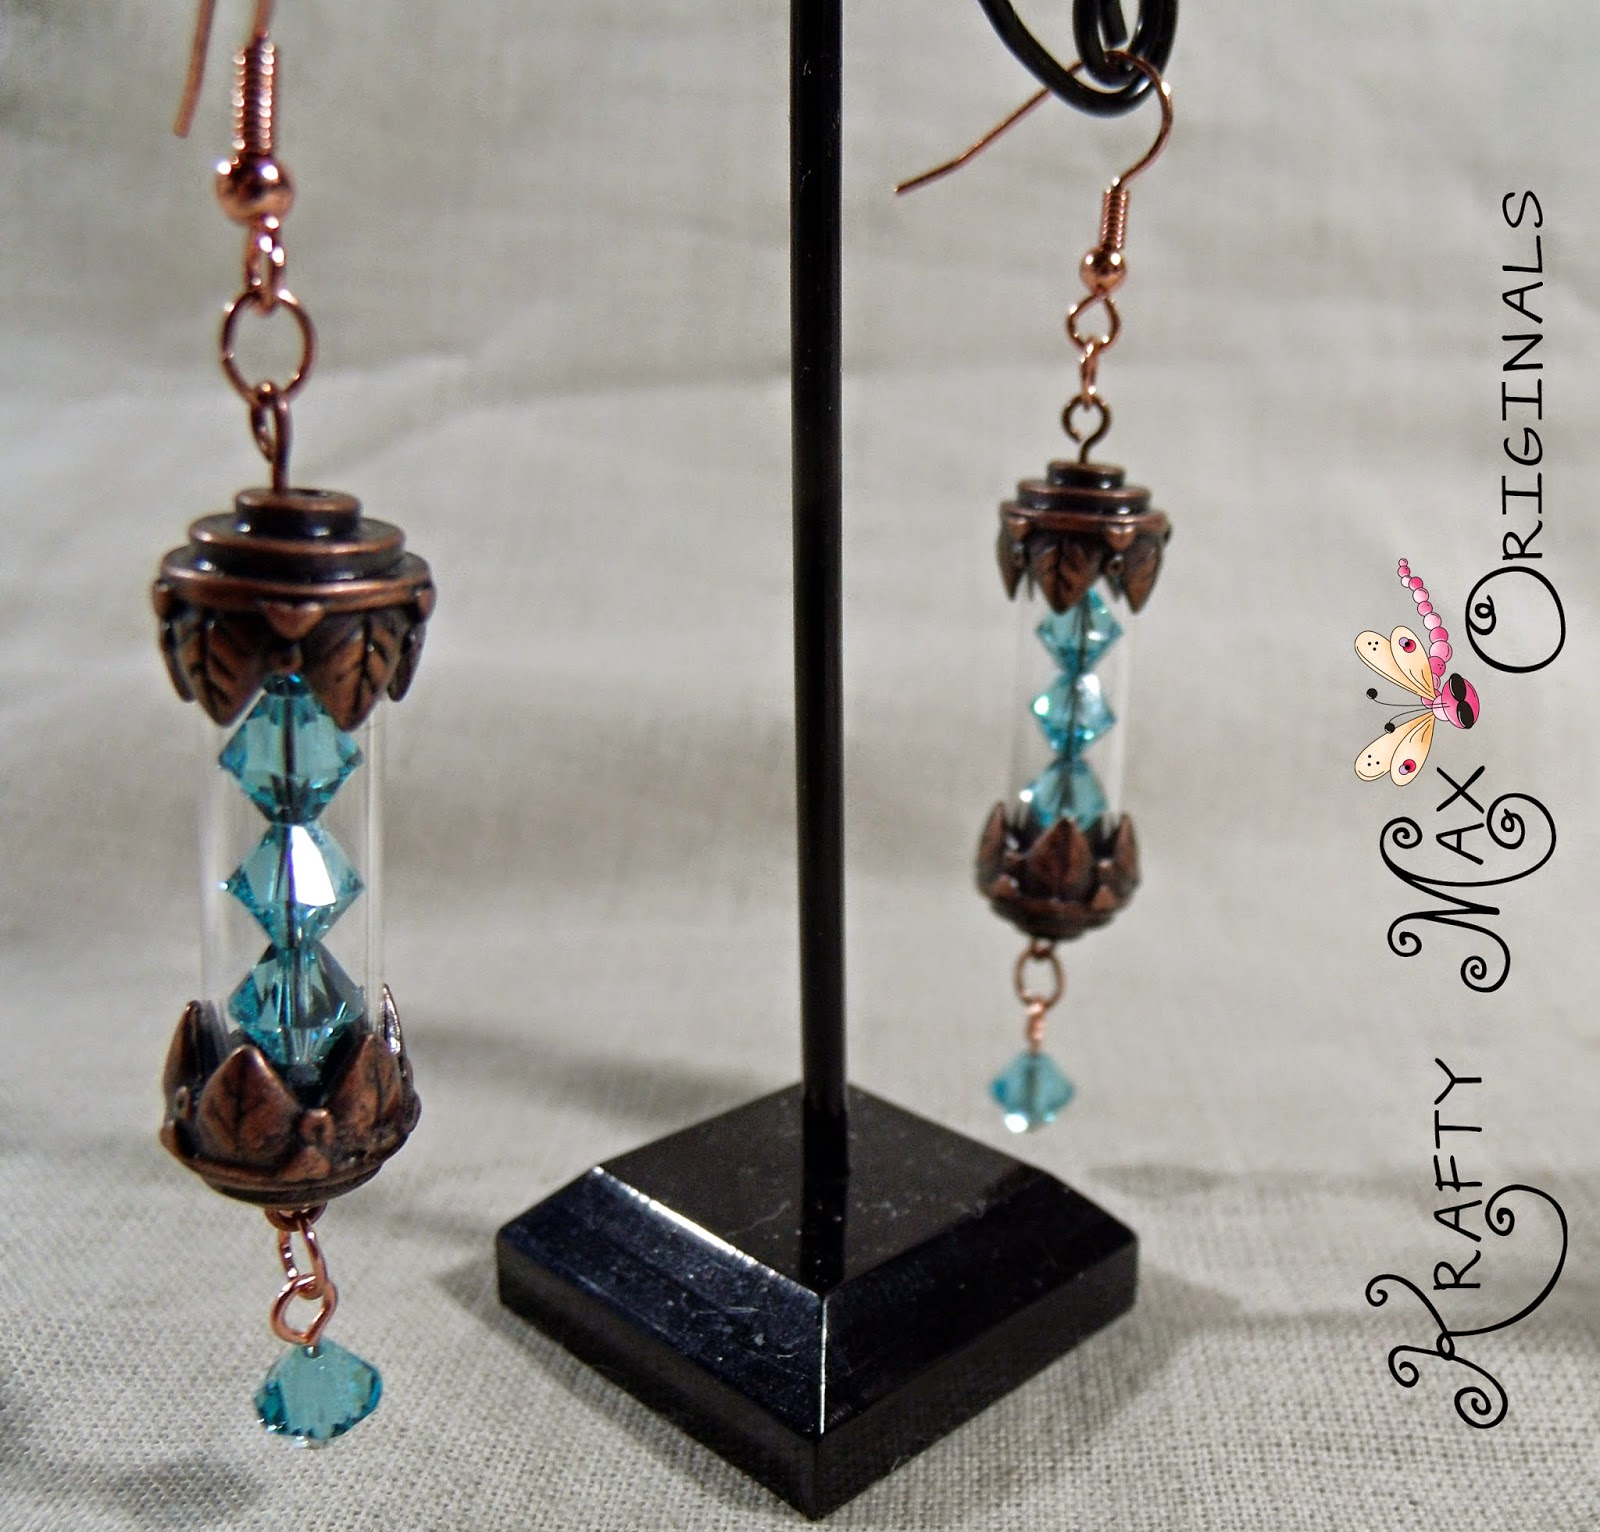 http://www.lajuliet.com/index.php/2013-01-04-15-21-51/ad/dangle,19/exclusive-teal-swarovski-crystal-earrings-a-krafty-max-original-design,345